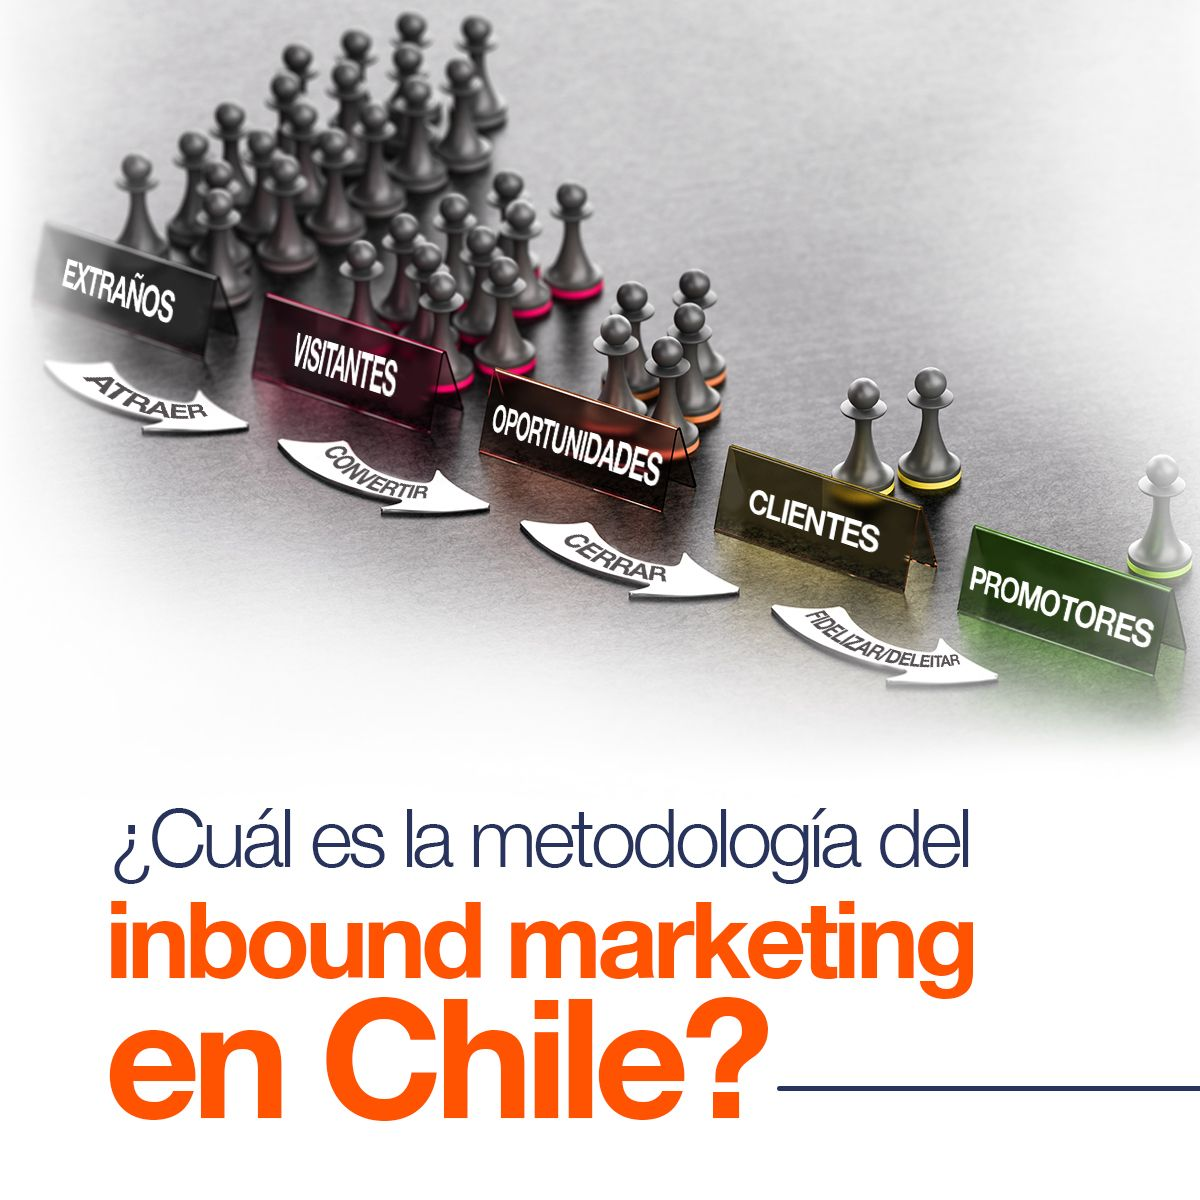 ¿Cuál es la metodología del inbound marketing en Chile?